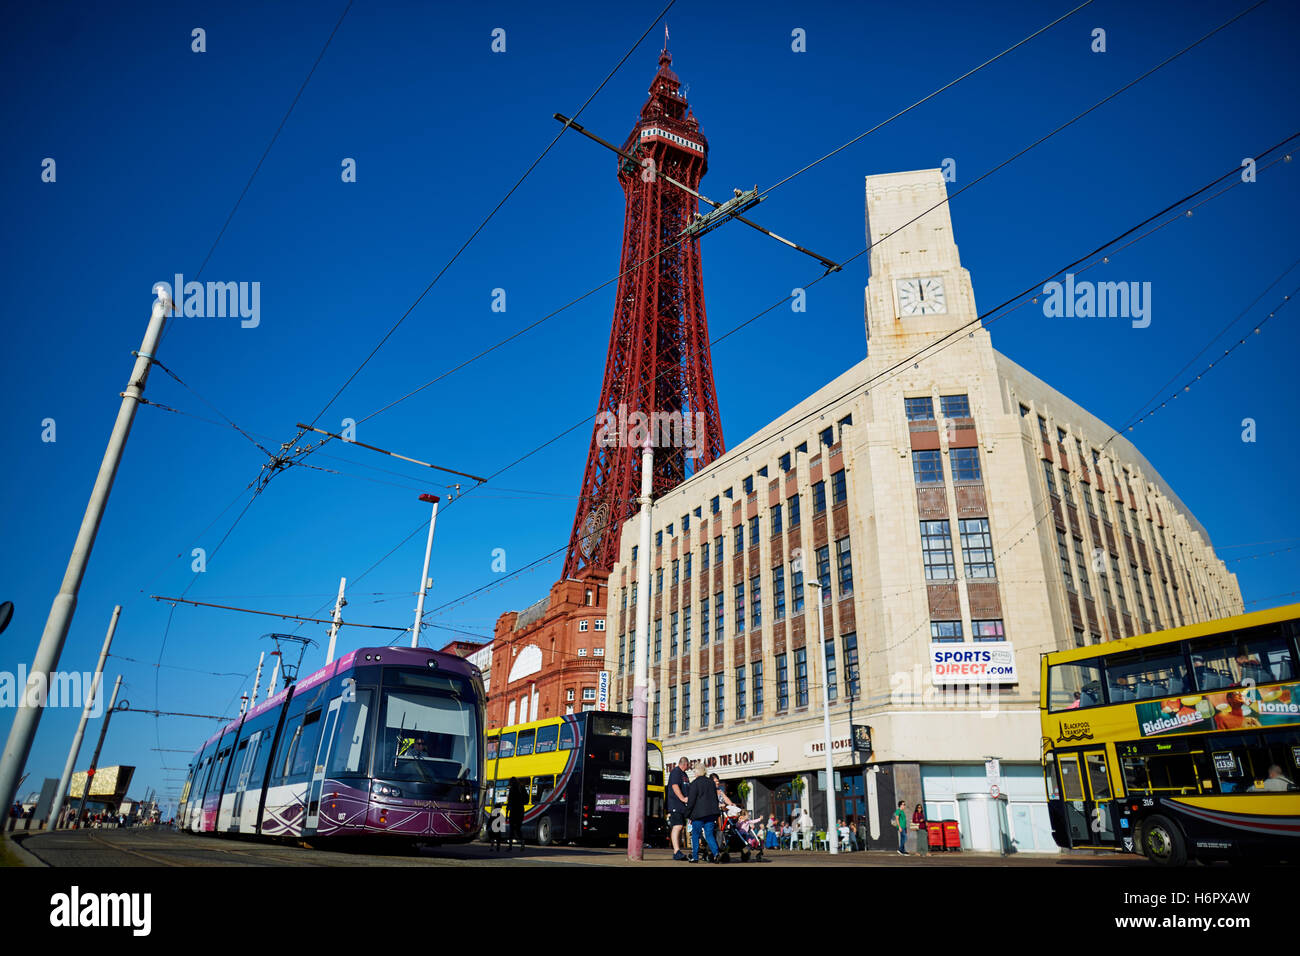 Blackpool ftower modern tram light rail  Holiday sea side town resort Lancashire tourist attractions  tower copyspace - Stock Image